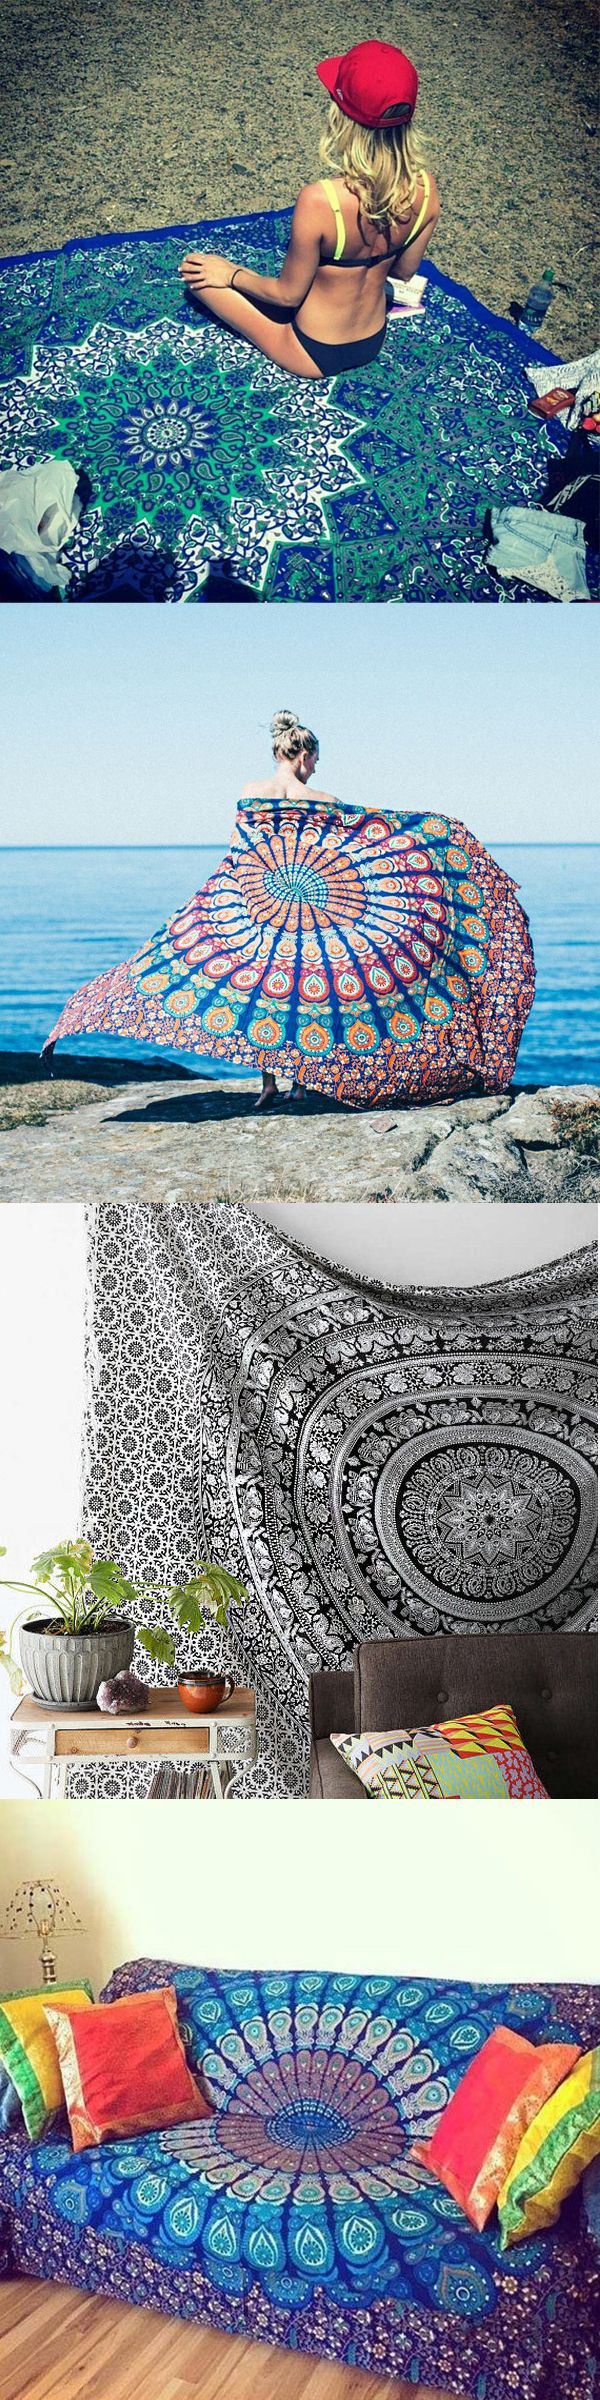 $14.26 Bohemian Style Thin Chiffon Beach Yoga Towel  Bed-Sheet Tapestry               |beach outfits|home decor|diy home decor|home decor ideas|